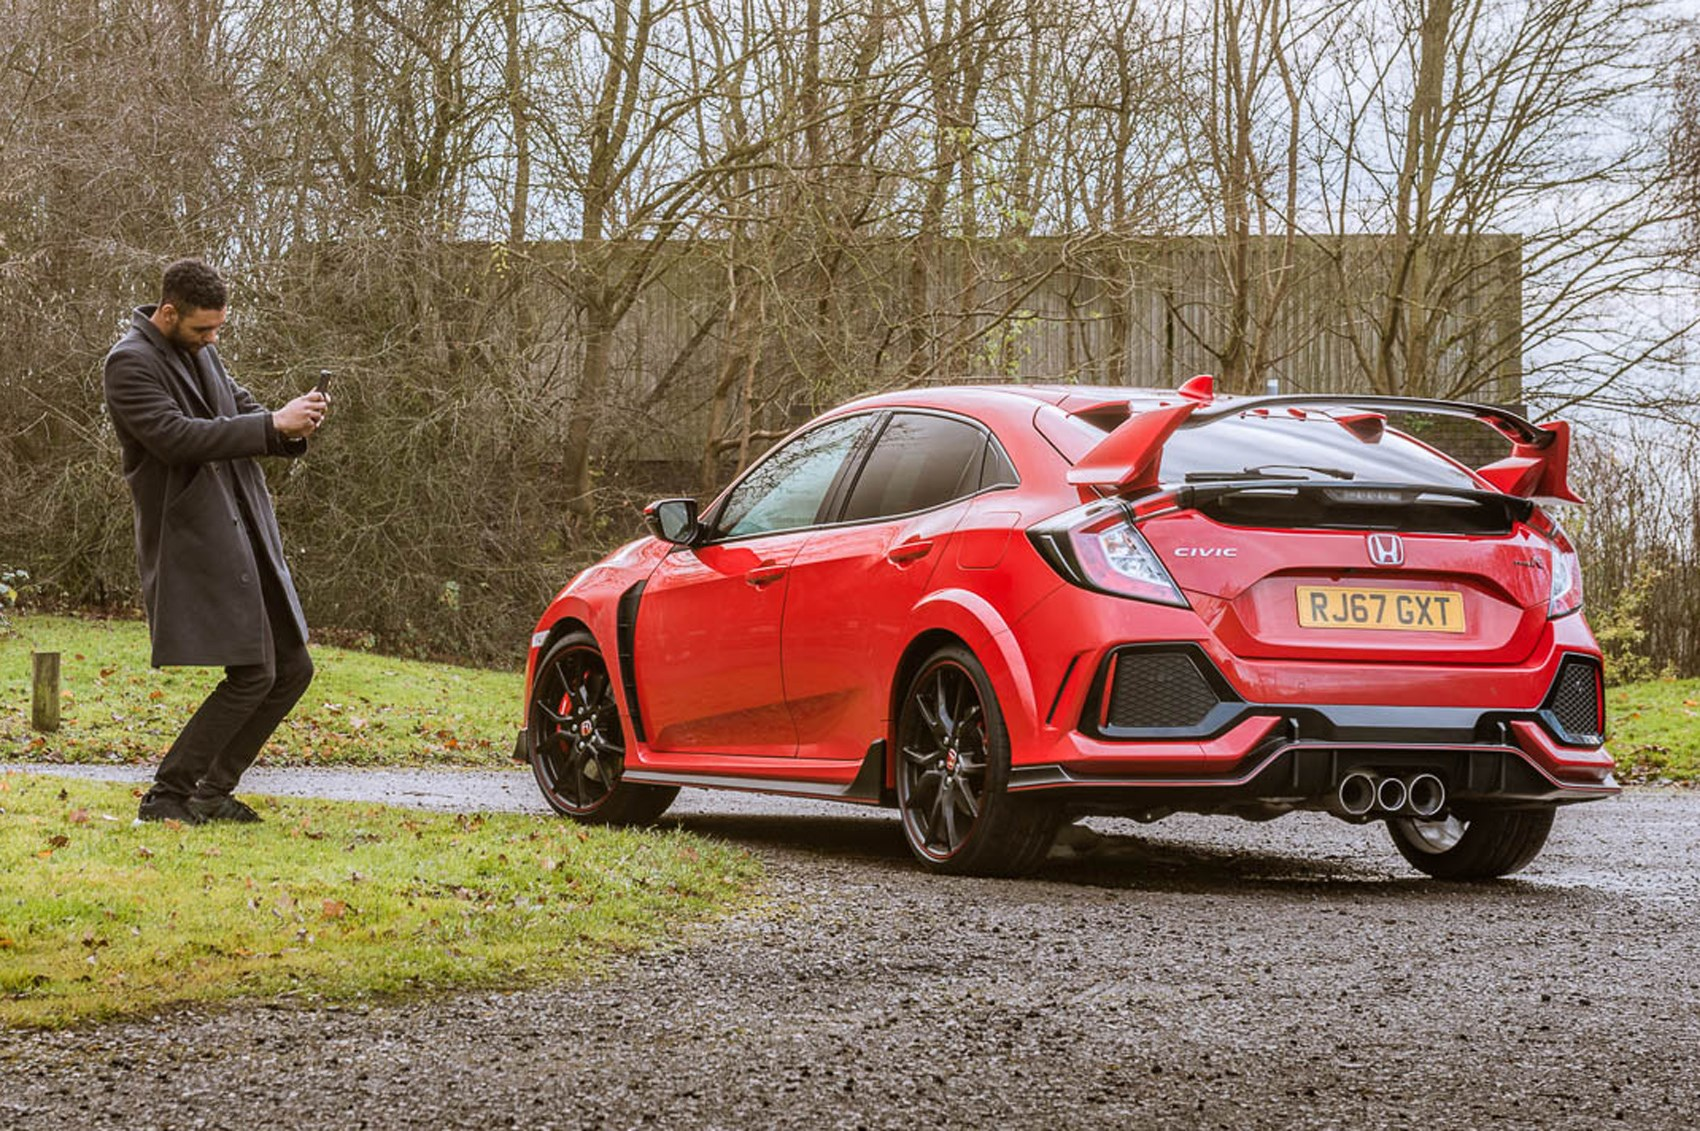 This Honda Civic Type R Or A Gt3 They Re Not As Far Apart You May Think